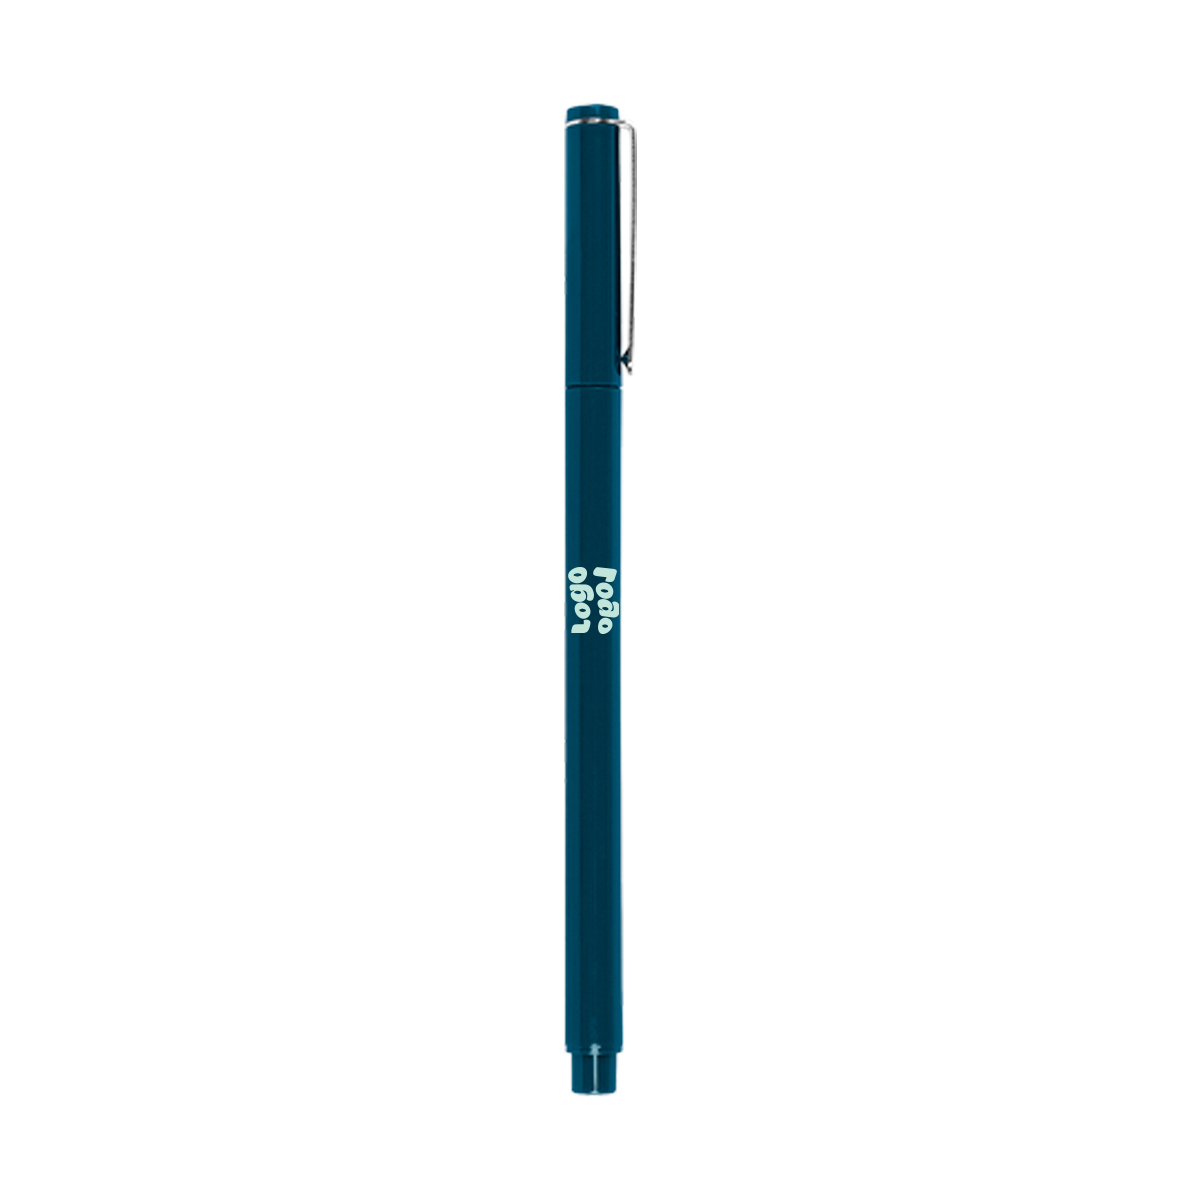 268062 fine tip pen full color digital imprint opposite of le pen logo